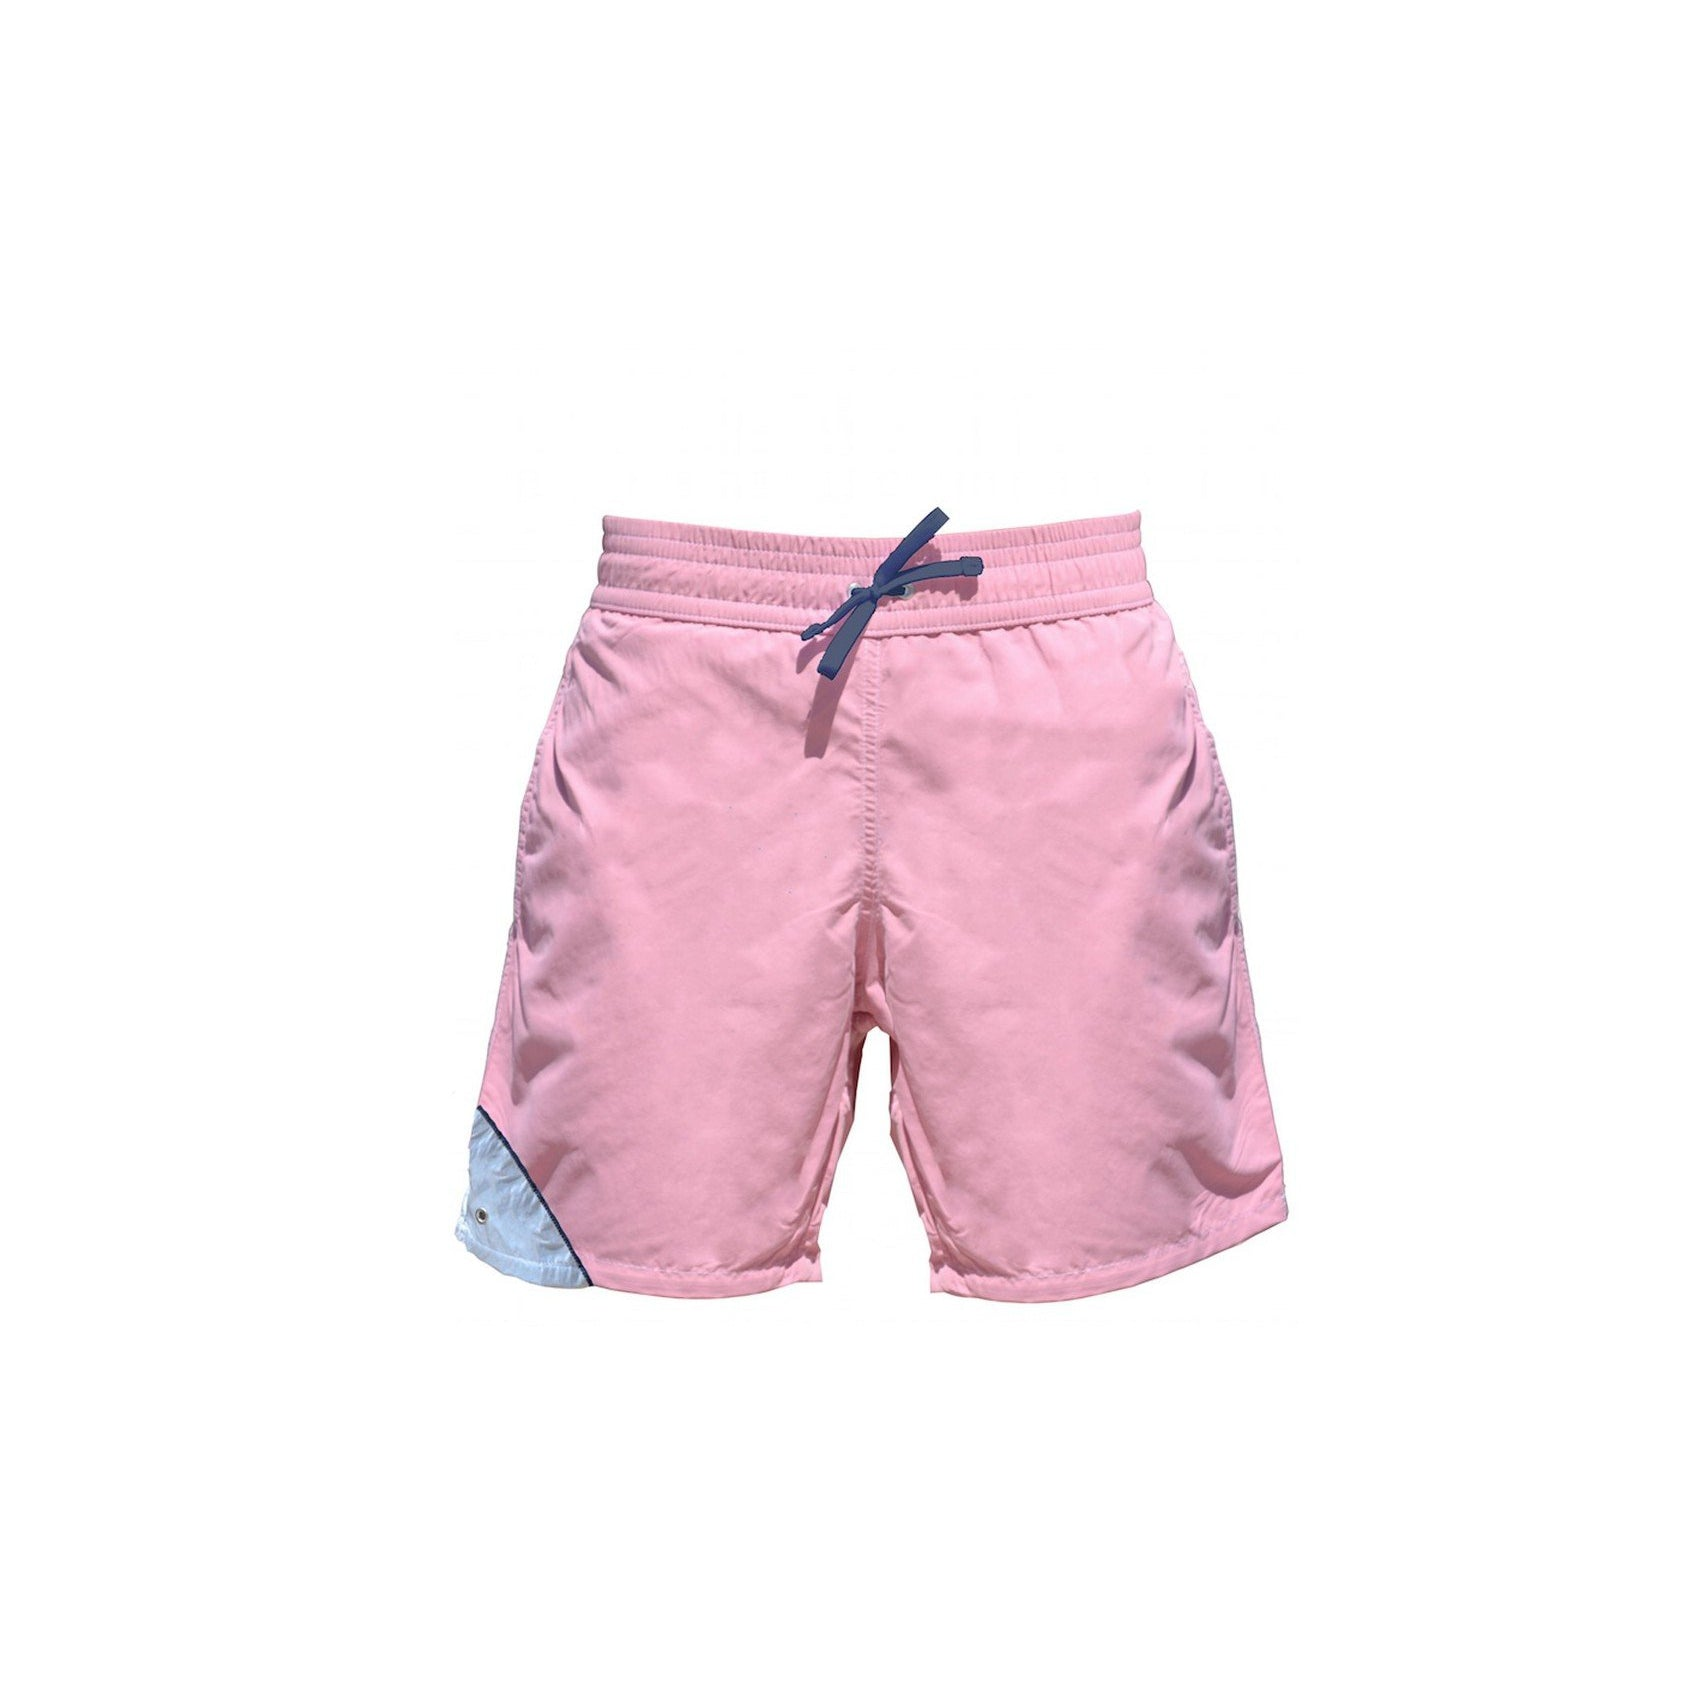 Swim Trunks - Raphael Swimsuit Spinnaker, Basic, Pink